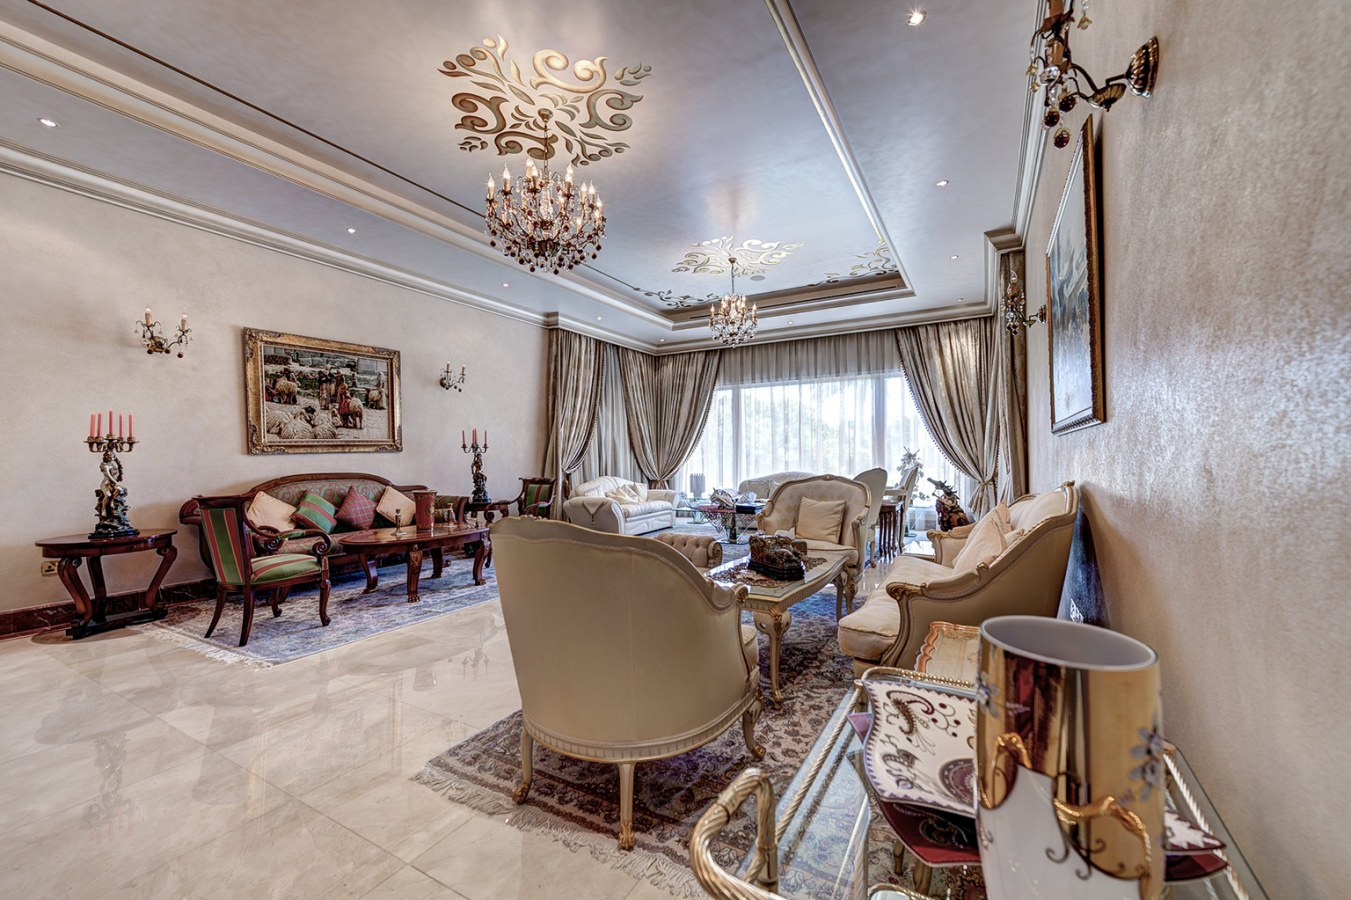 Luxurious villa for sale in Emirates Hills listed with The Noble House Real Estate on Bayut 05